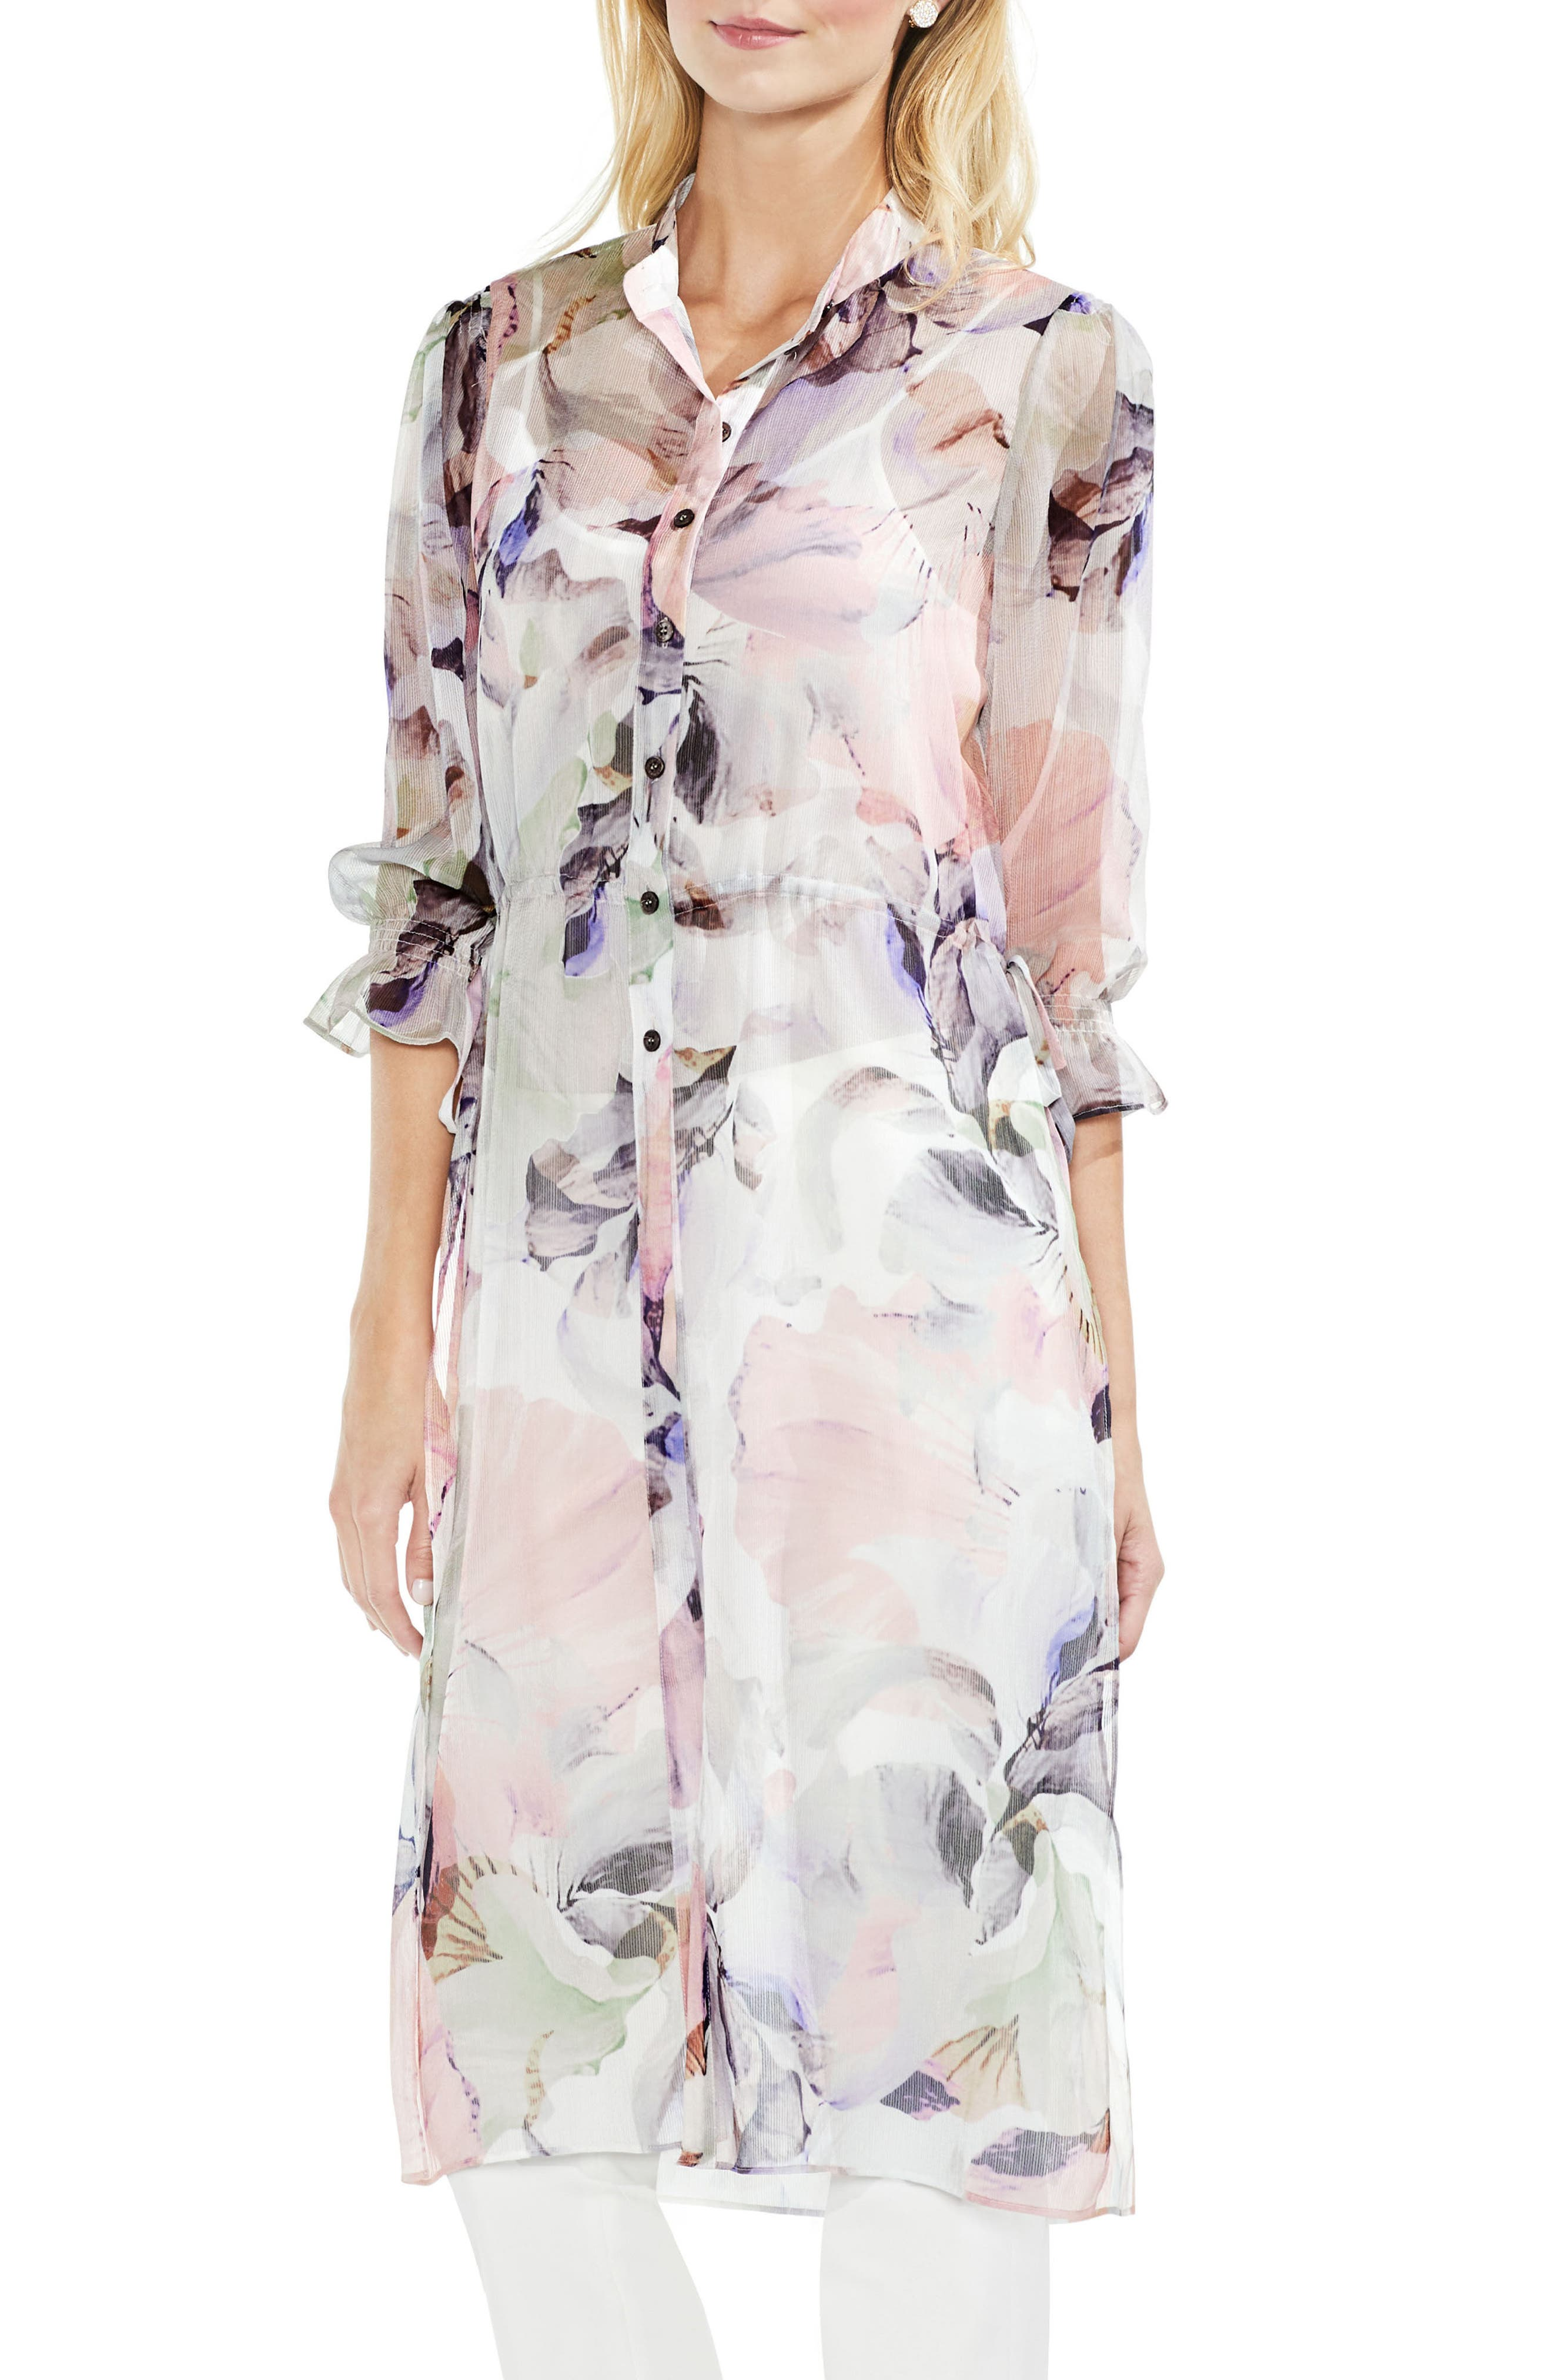 Vince Camuto Diffused Bloom Side Tie Tunic (Regular and Petite)